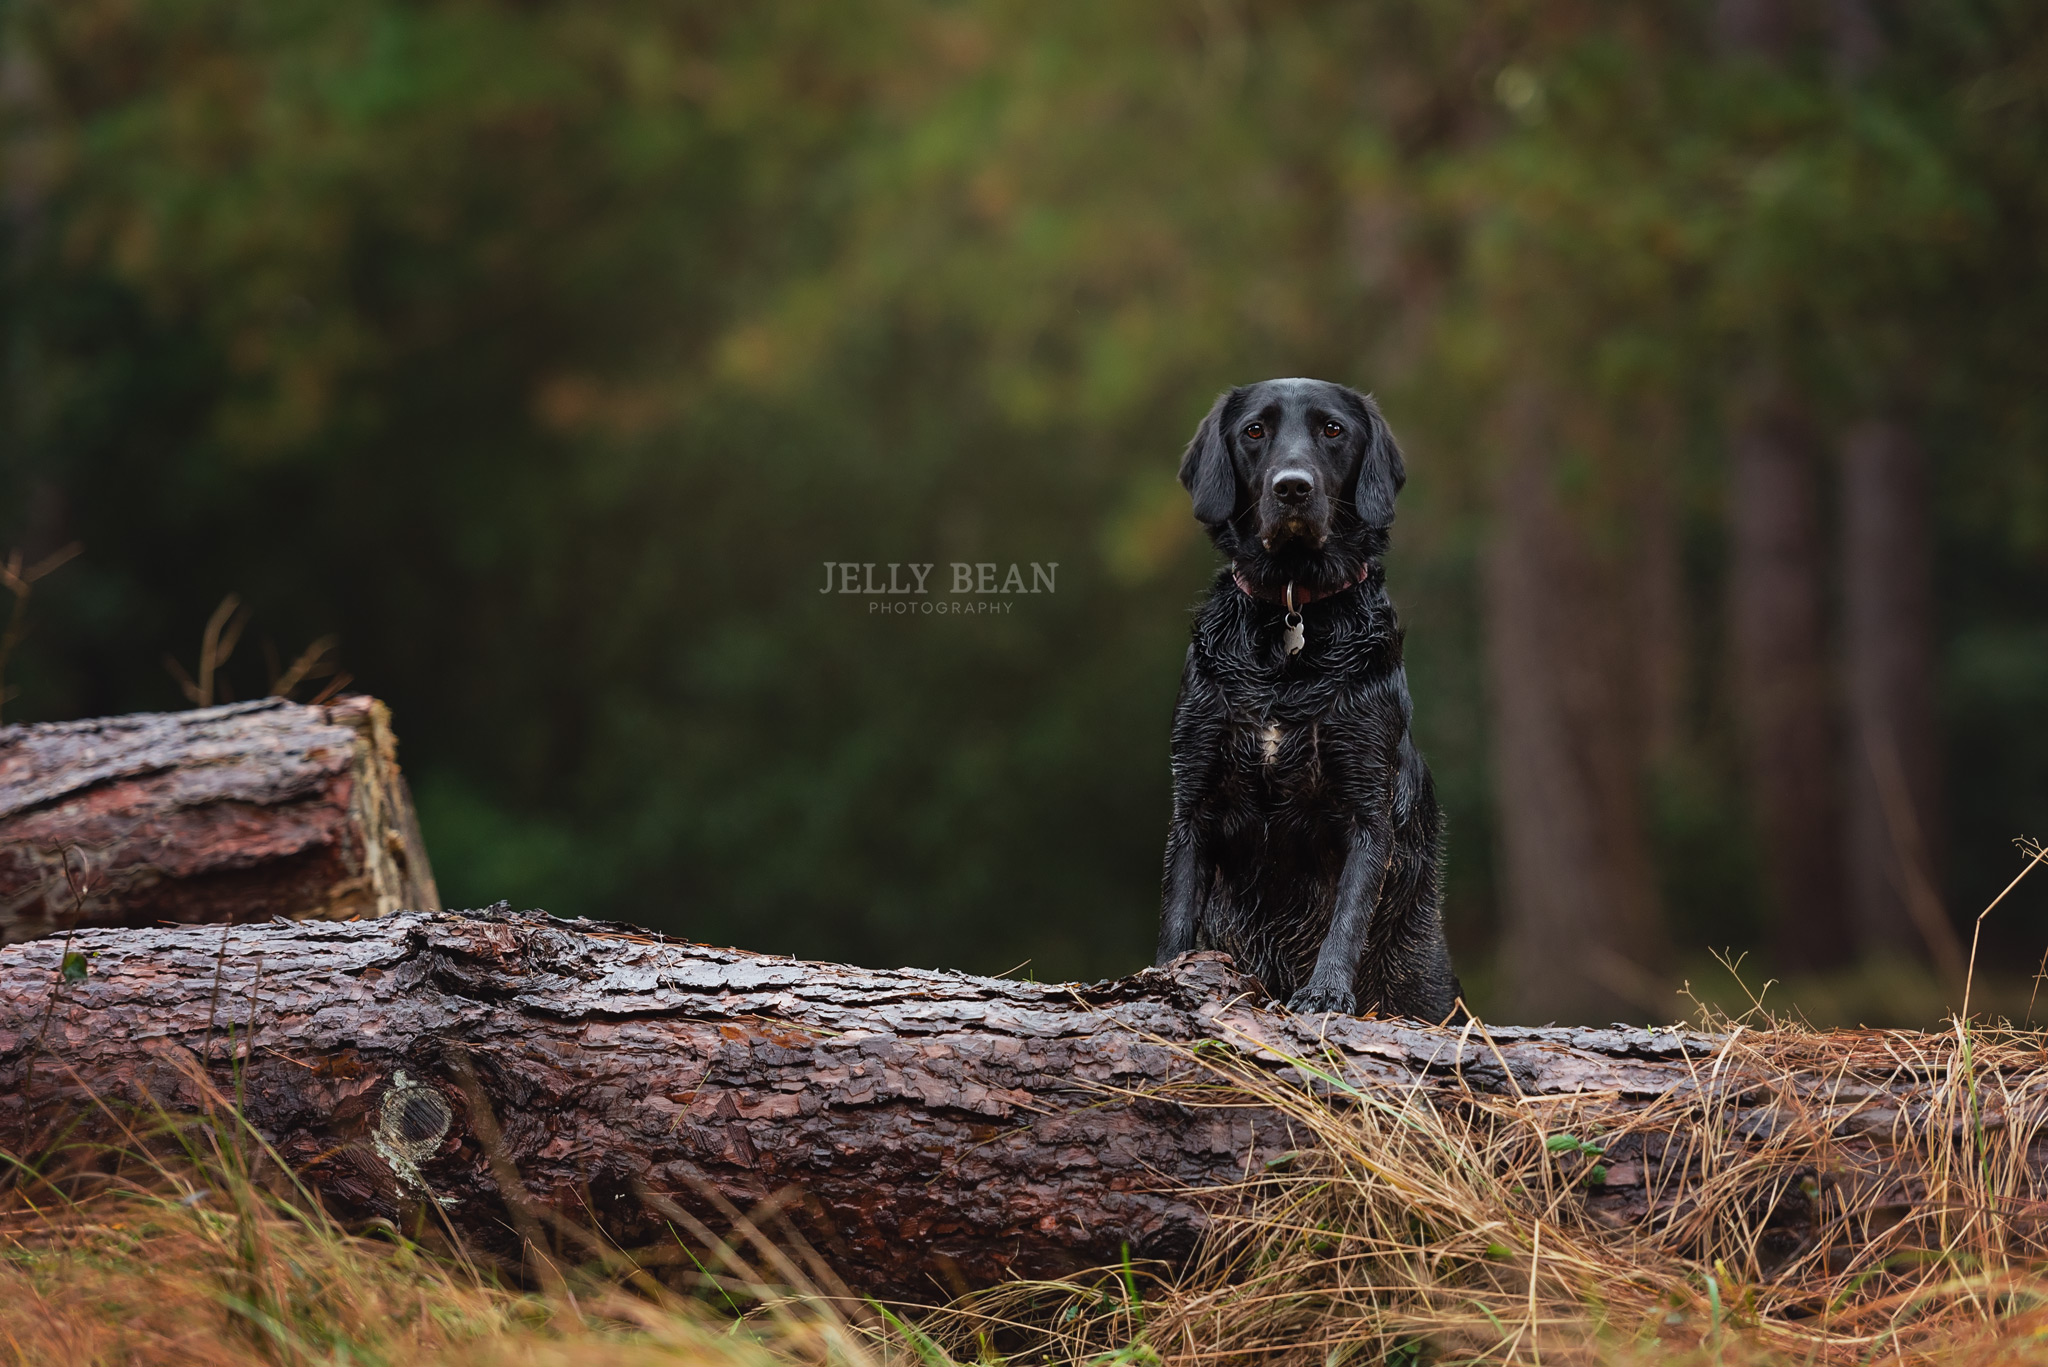 Dog standing on log in the forest